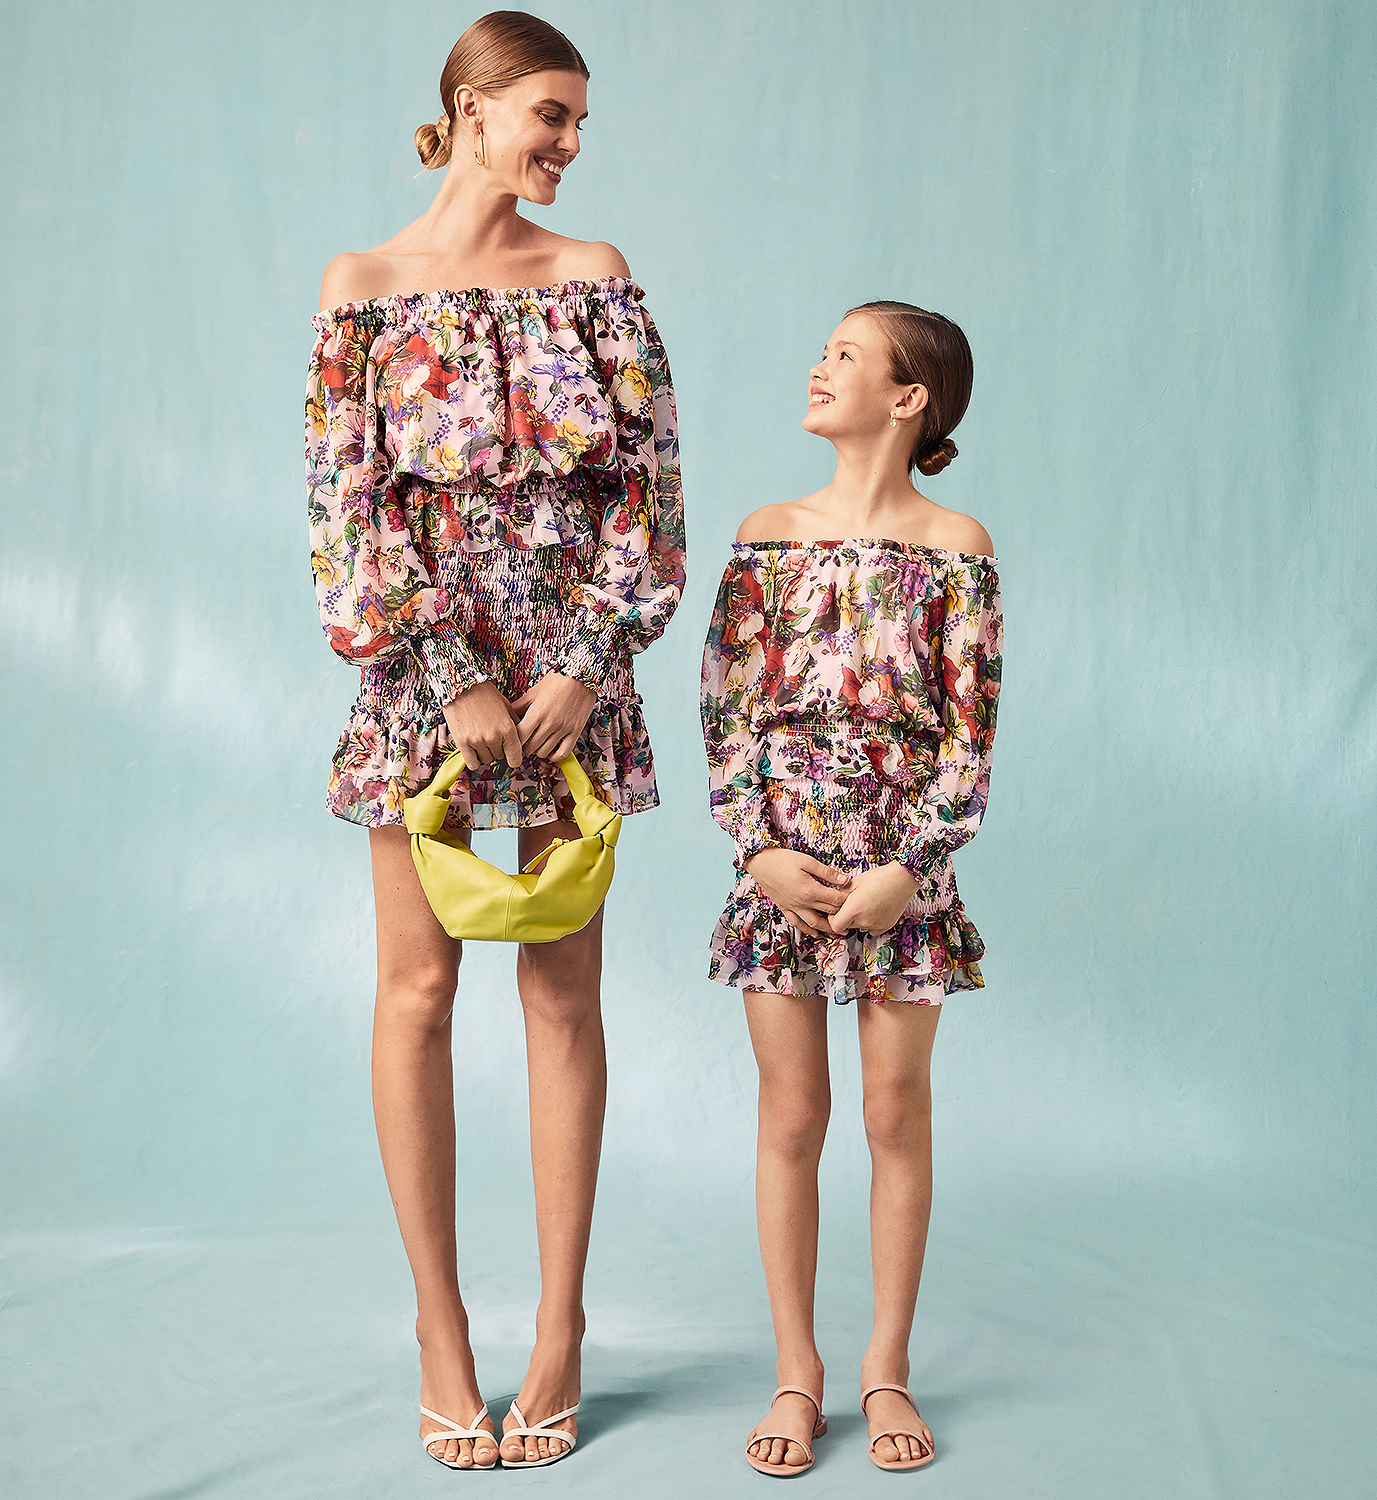 """Mary Katrantzou, widely considered """"the Queen of Print,"""" is bringing her signature aesthetic to Bloomingdales through a collaboration with AQUA, one of the department store's premiere private labels. The limited-edition 18-piece Aqua x Mary Katrantzou capsule collection features dresses and separates ranging from $78 to $378 in four new prints: butterflies, leopards, rainbow parrots and pink florals.                             """"I am excited for the launch of our capsule collection forAQUAthat was designed with the intention to create a joyful and feel-good collection that will appeal to women of all ages,"""" Katrantzou said in a statement. """"For the first time we also had the opportunity to delve into girl's sizing, which was a great creative challenge.The idea was to bring nature's forms into the prints: from monarch butterflies to punchy florals, and from leopard prints to tropical bird prints, giving the wearer the option to mix and match the styles and patterns.""""                             Buy It! AQUA x Mary Katrantzou Parrot Print Off The Shoulder Romper, $118; bloomingdales.com"""